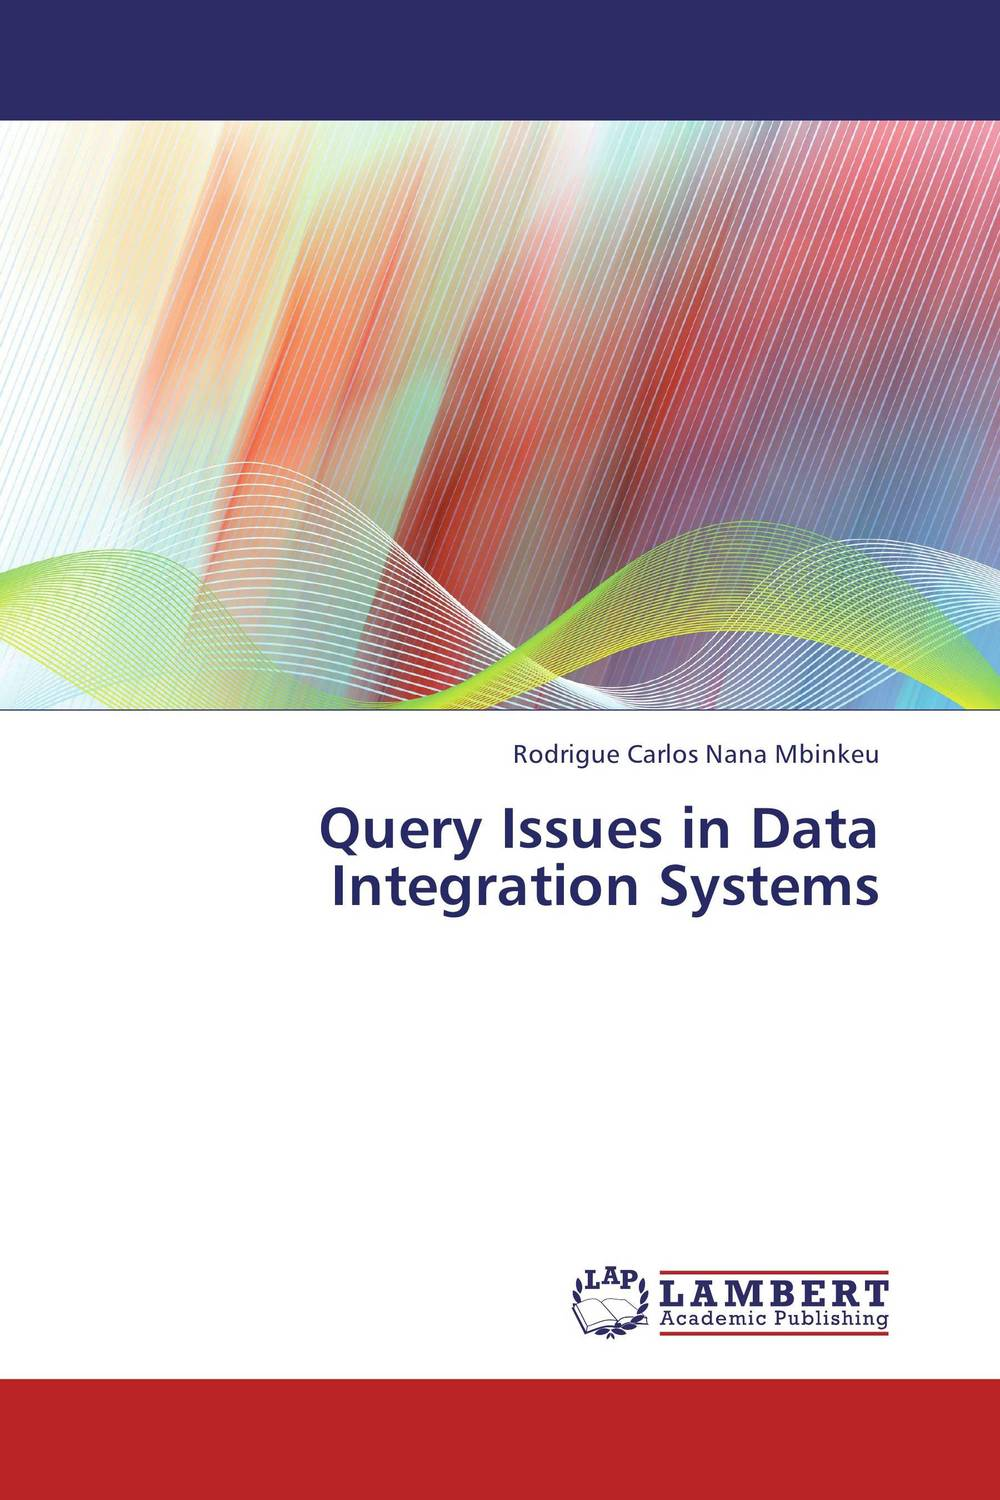 Query Issues in Data Integration Systems fusion and revision of uncertain information from multiple sources